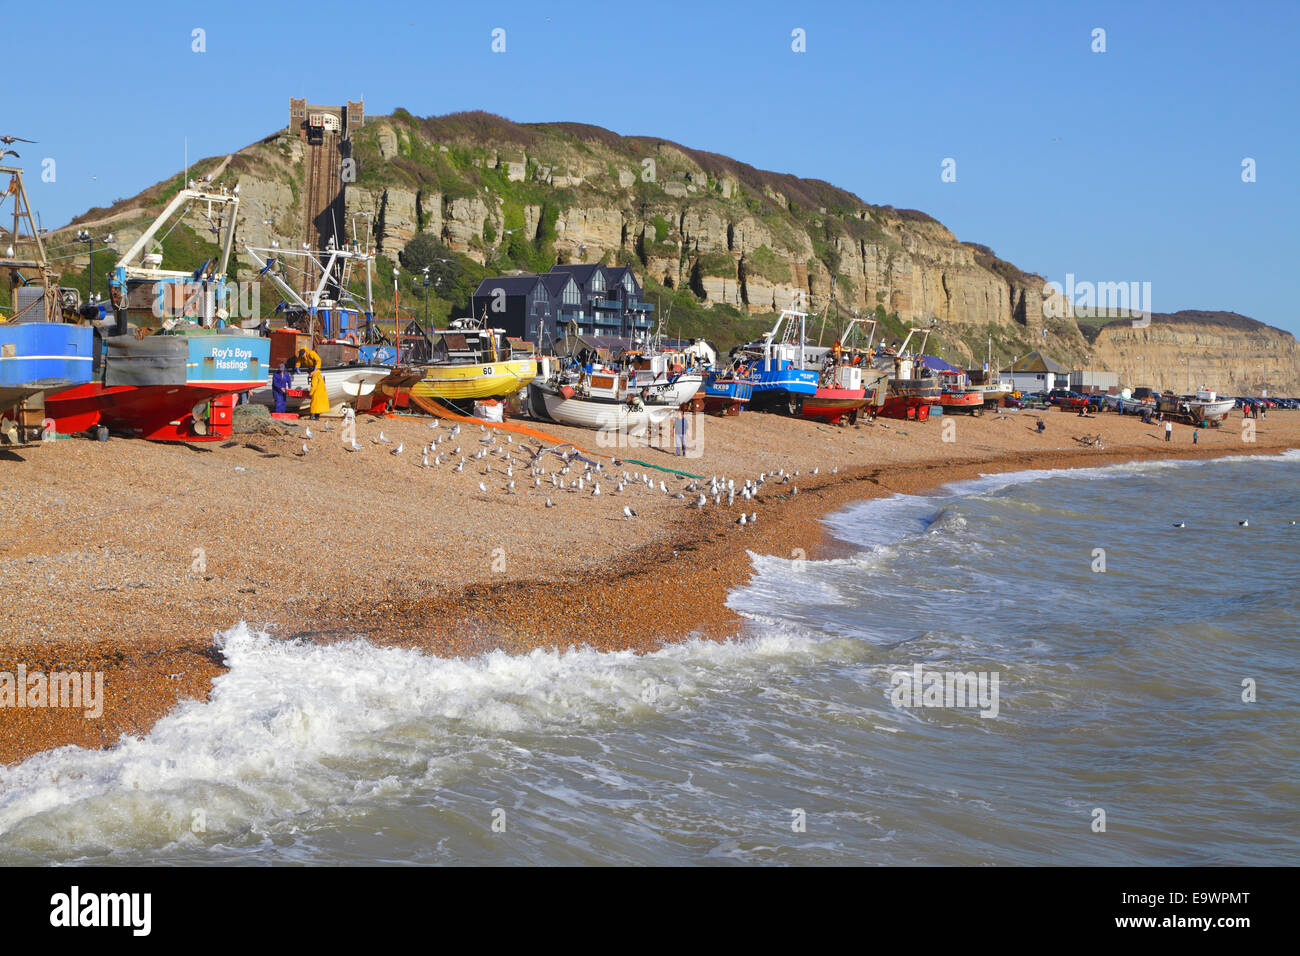 Fishing boats on Hastings Old Town Stade beach East Sussex UK. Hastings has the biggest beach launched fishing fleet - Stock Image